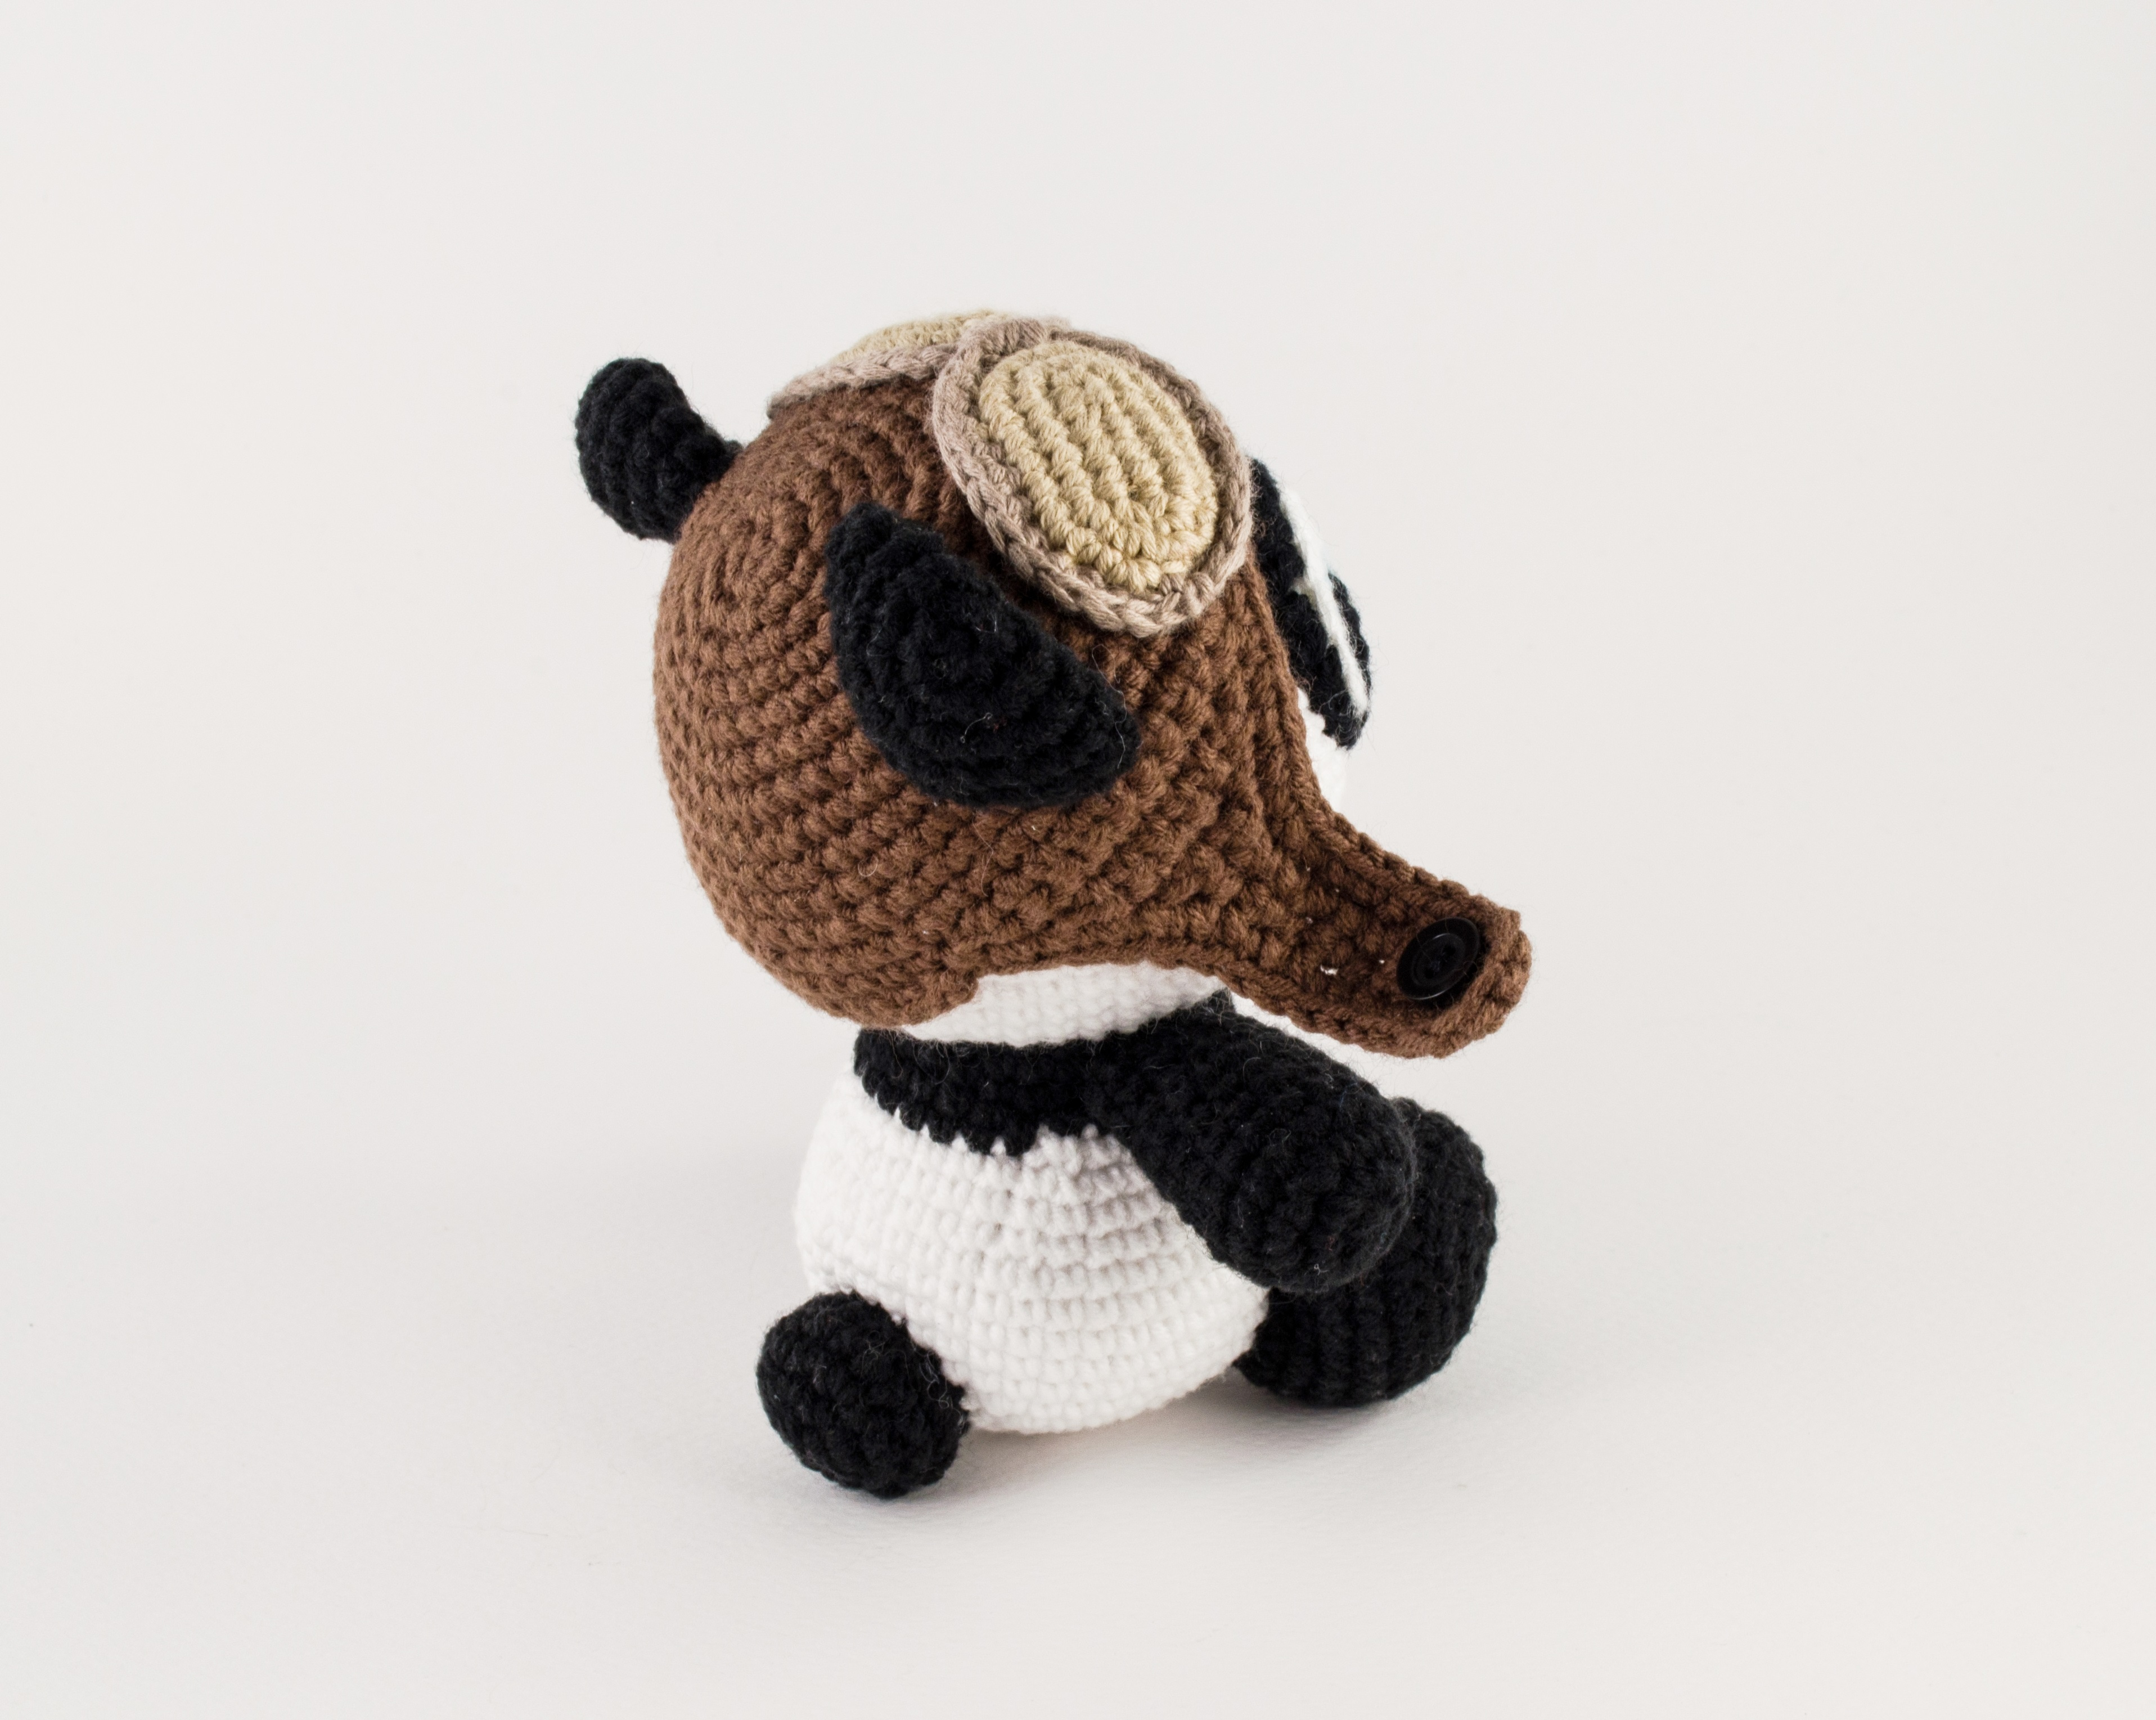 crochet panda back view